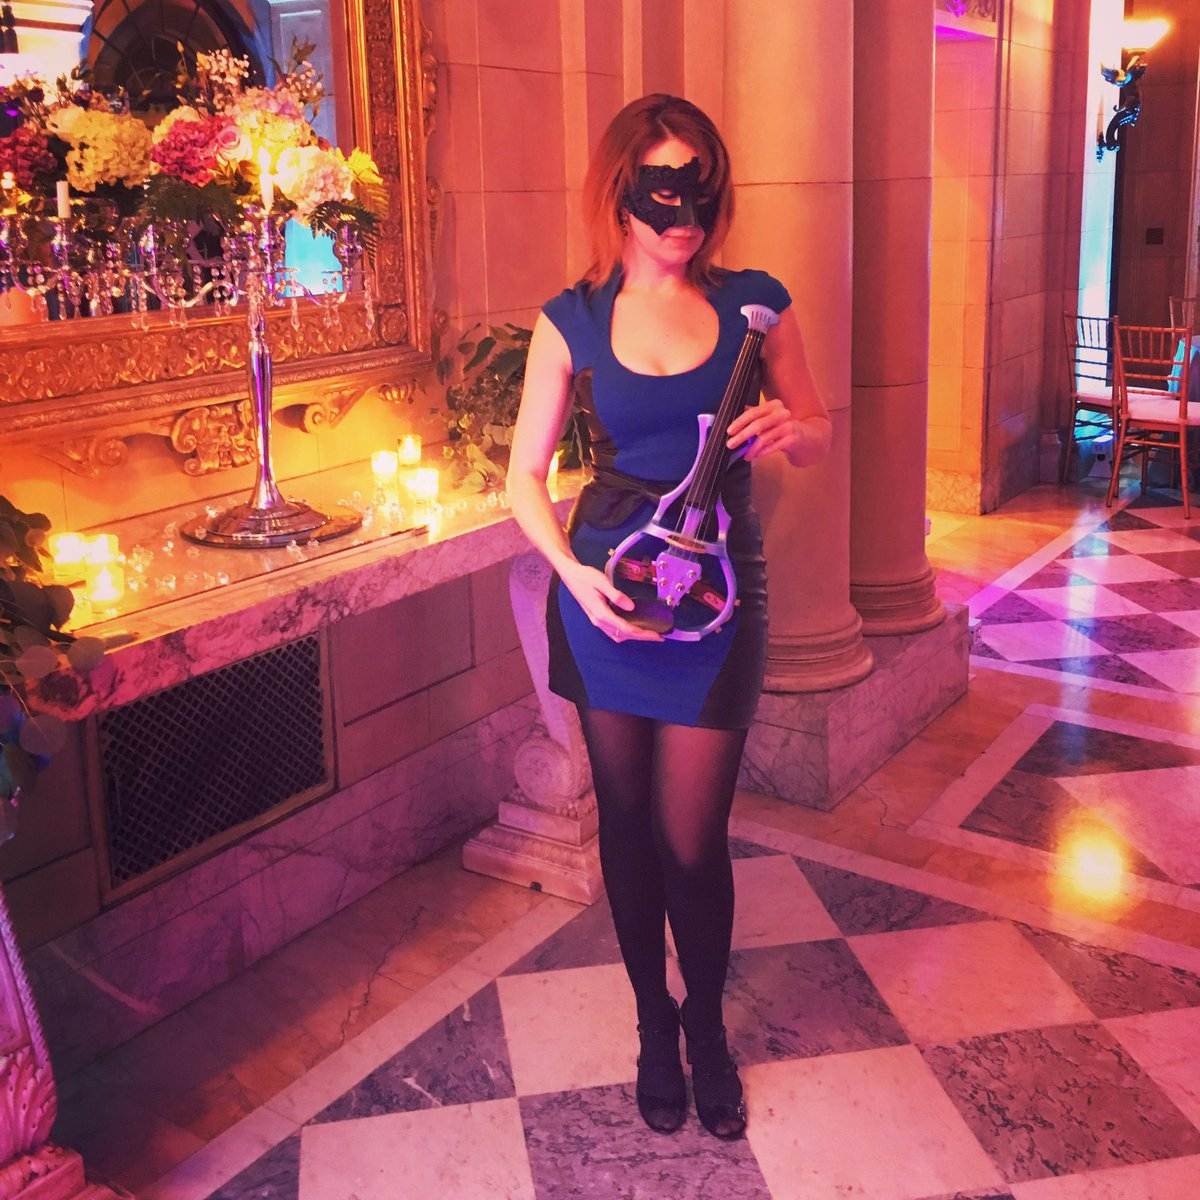 When your client asks if you mind wearing a mask... #masquerade #newenglandevents #electricviolin #violectra #taranovakviolin<br>http://pic.twitter.com/LS4PF4iHL7 &ndash; à Aldrich Mansion